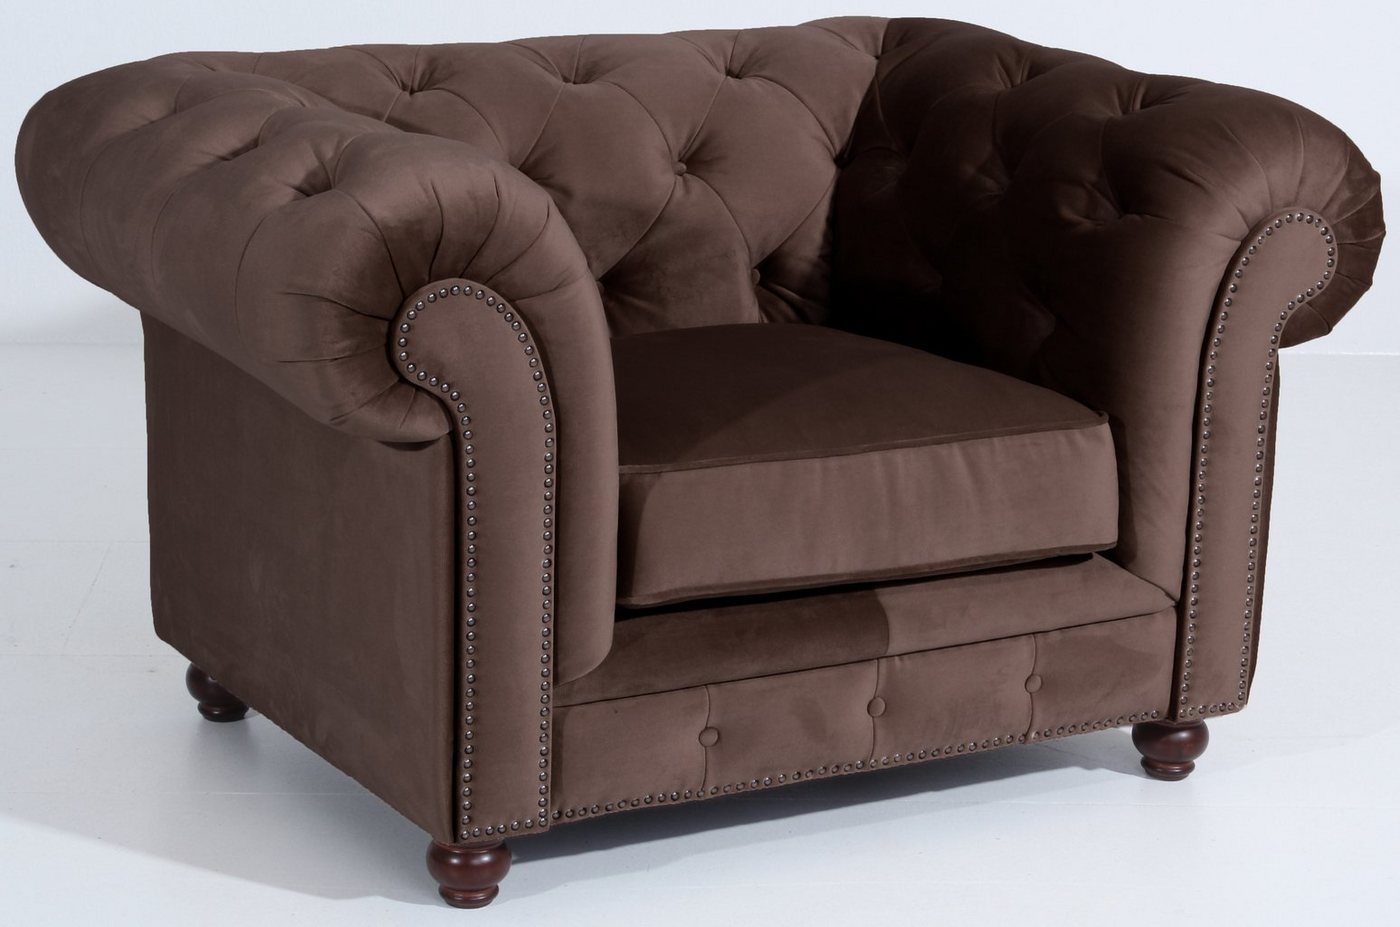 MAX WINZER® Chesterfield-fauteuil Old Engeland